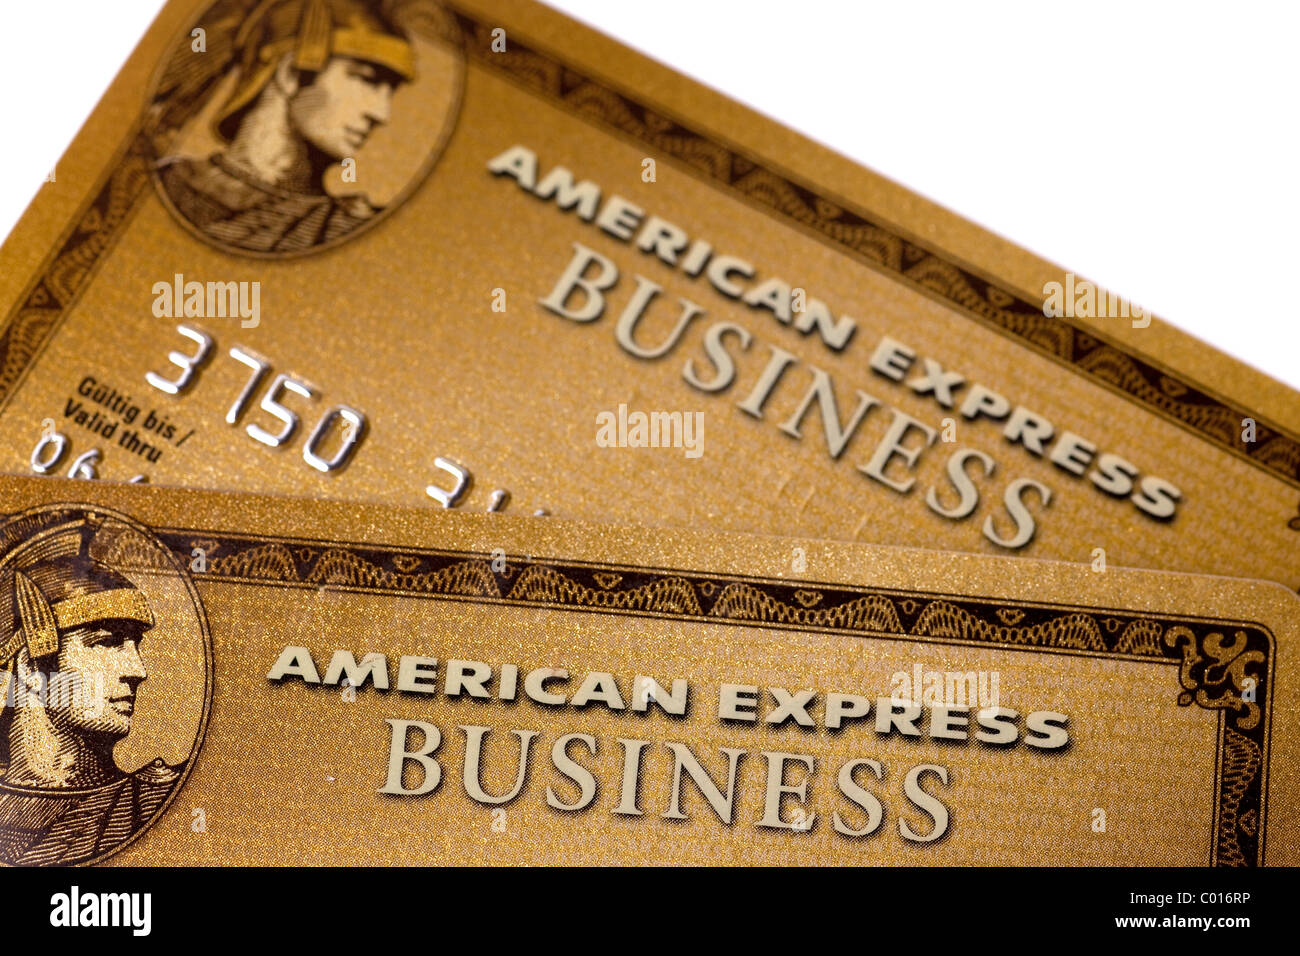 American express credit card stock photos american express credit credit cards american express amex gold business card stock image colourmoves